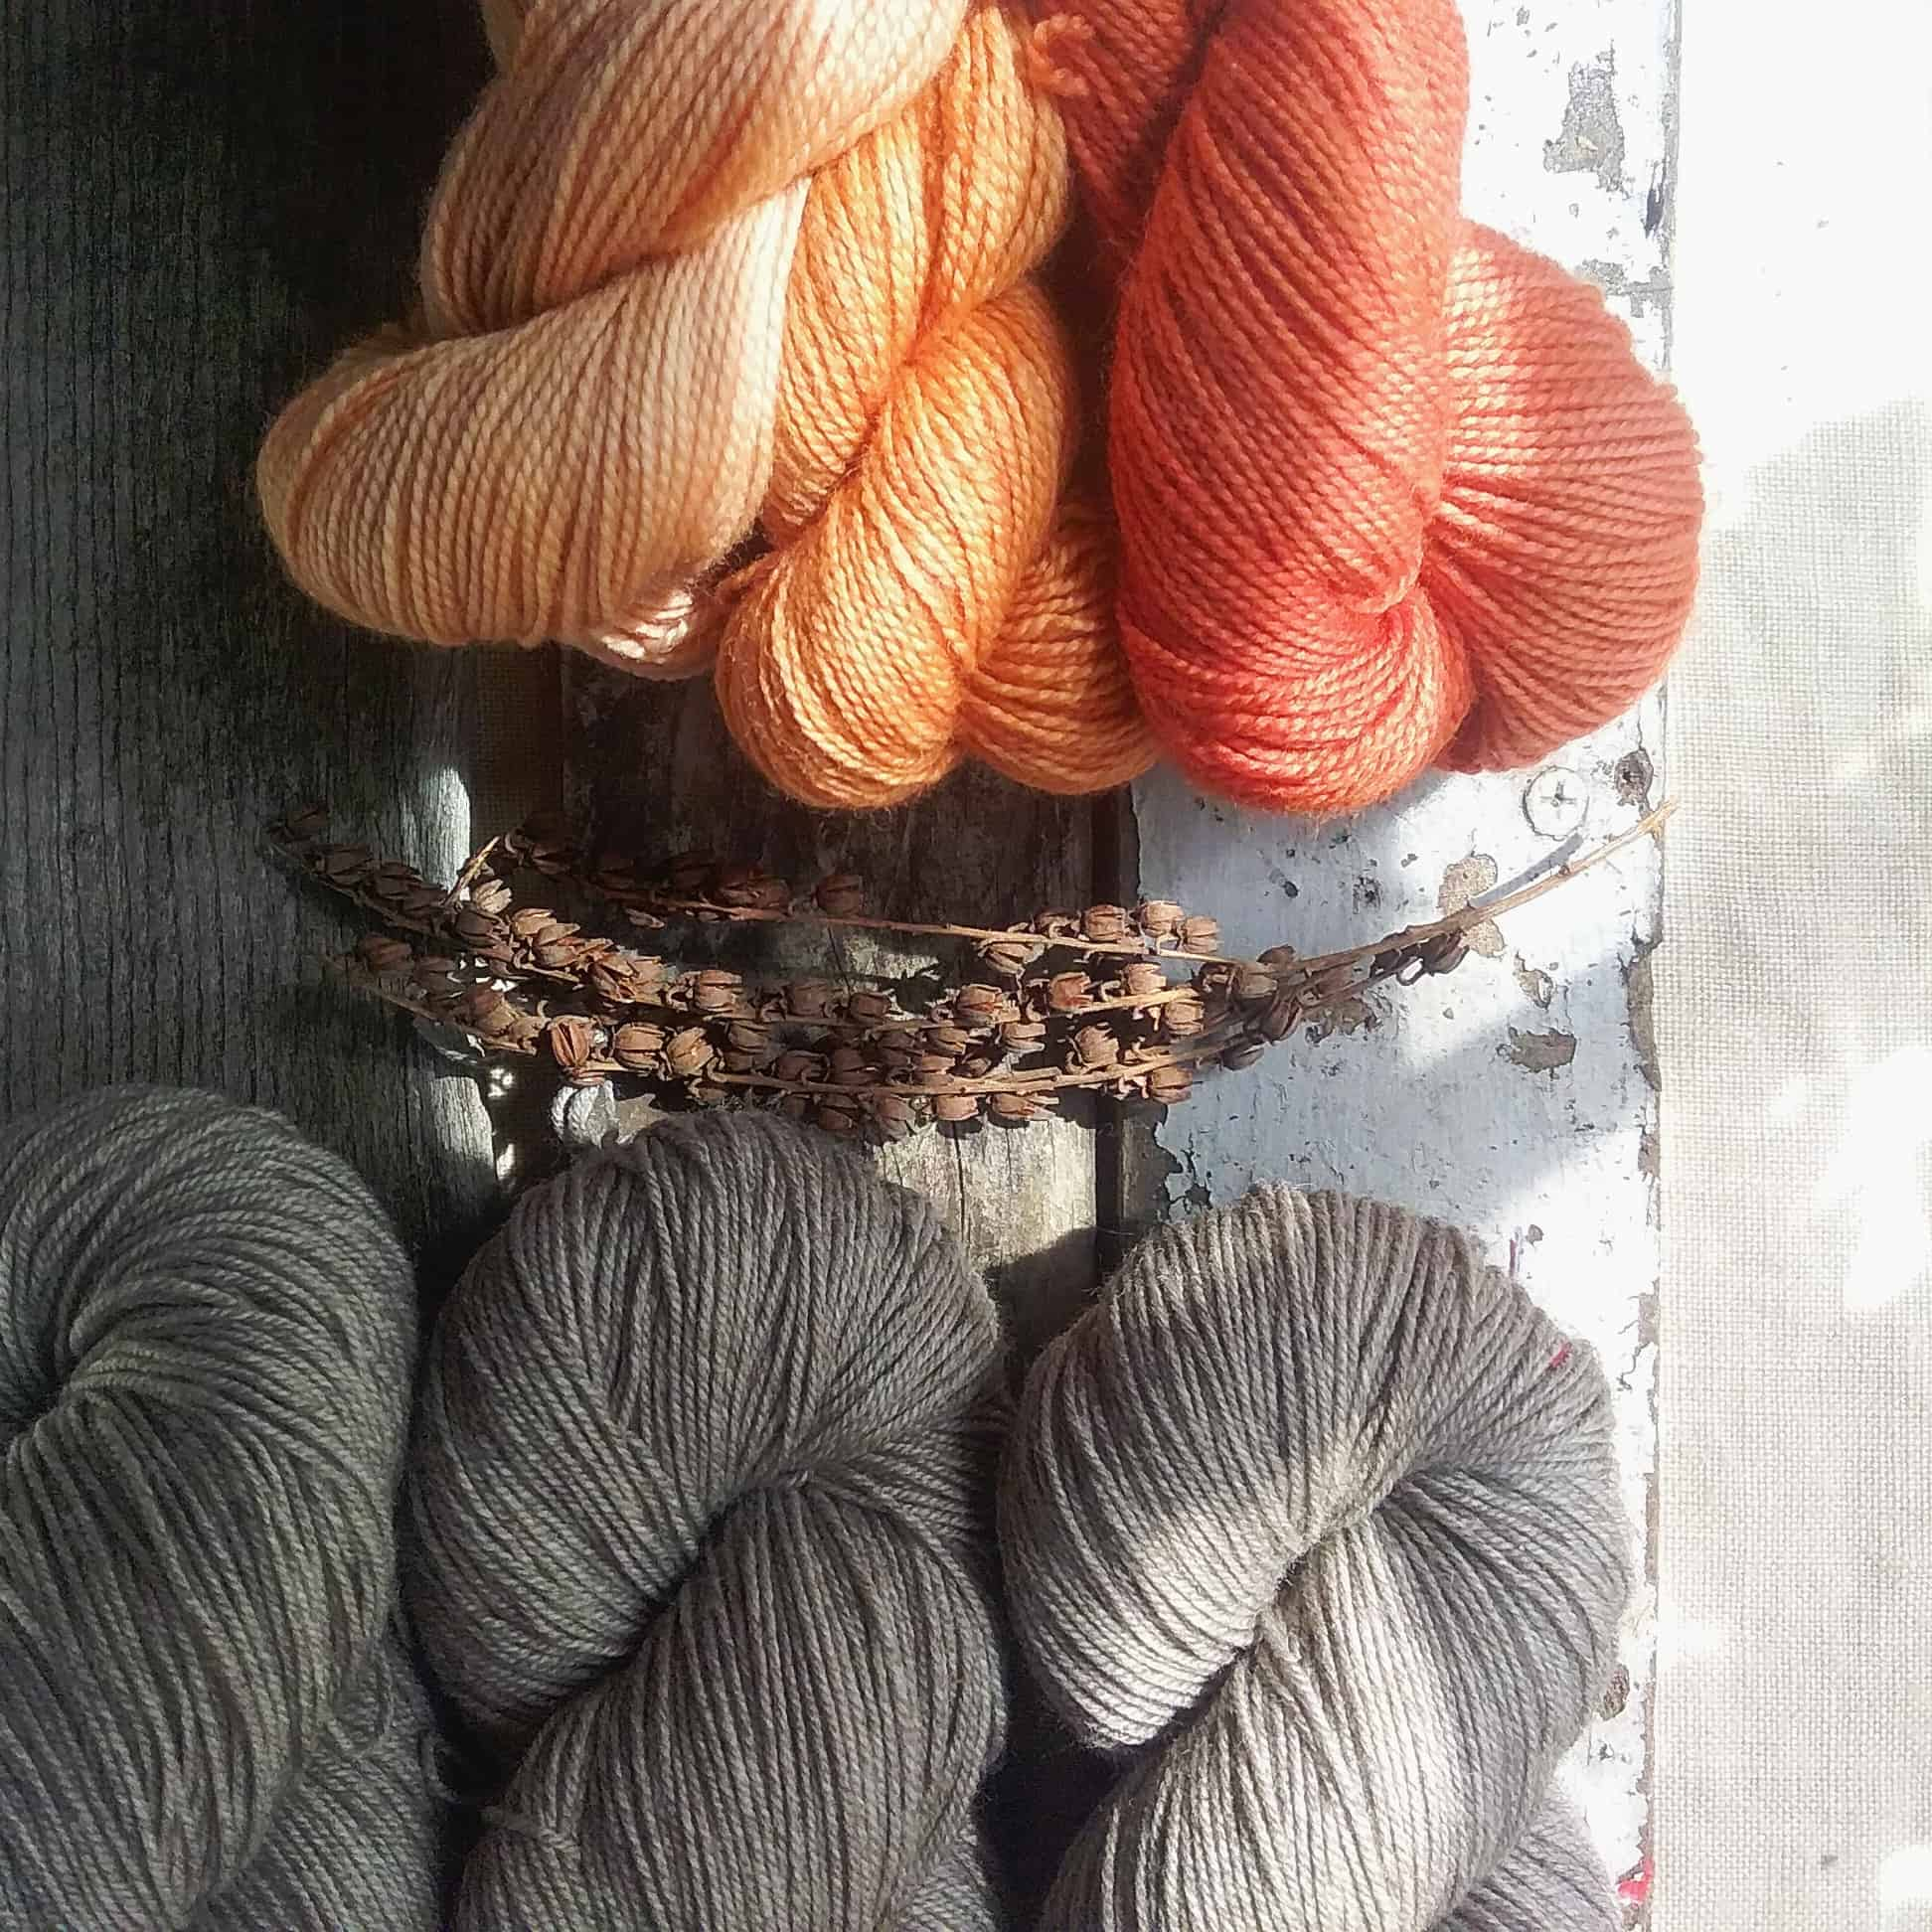 Trios of peachy orange and gray yarn.